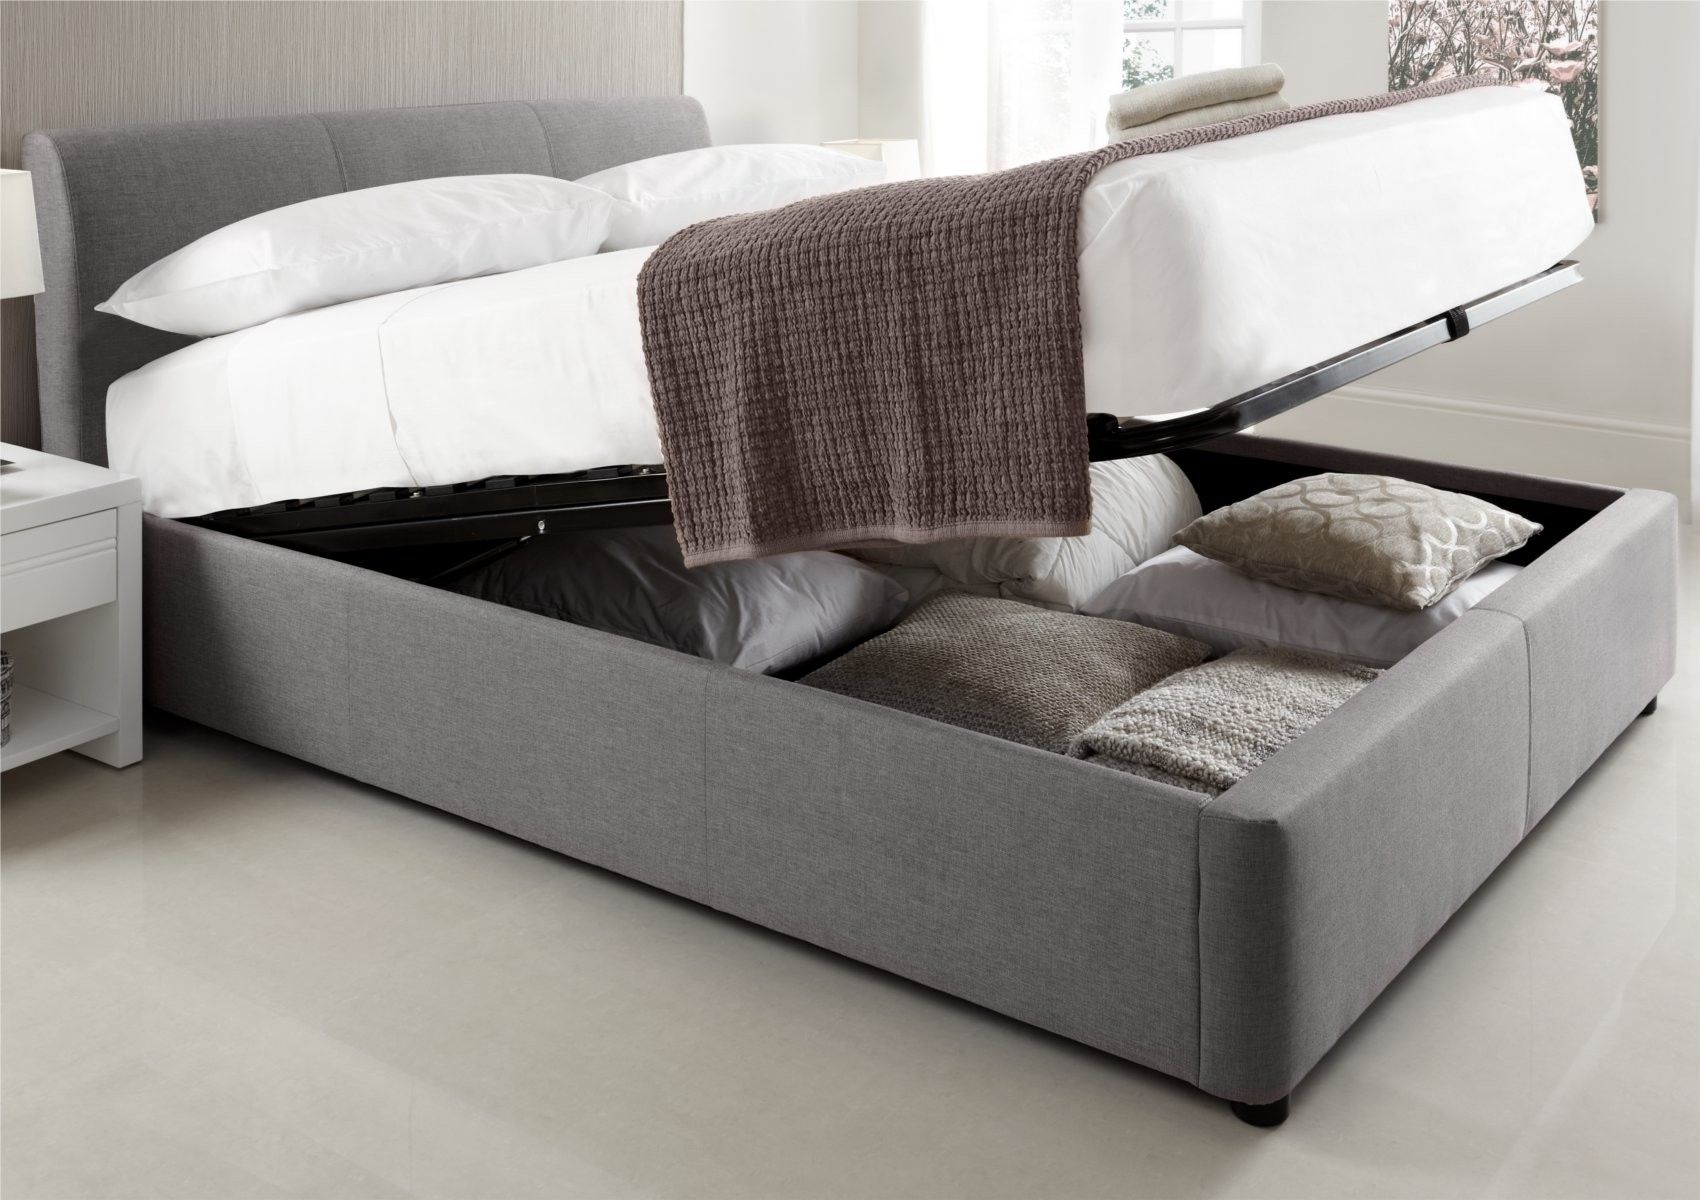 Serenity Upholstered Ottoman Storage Bed